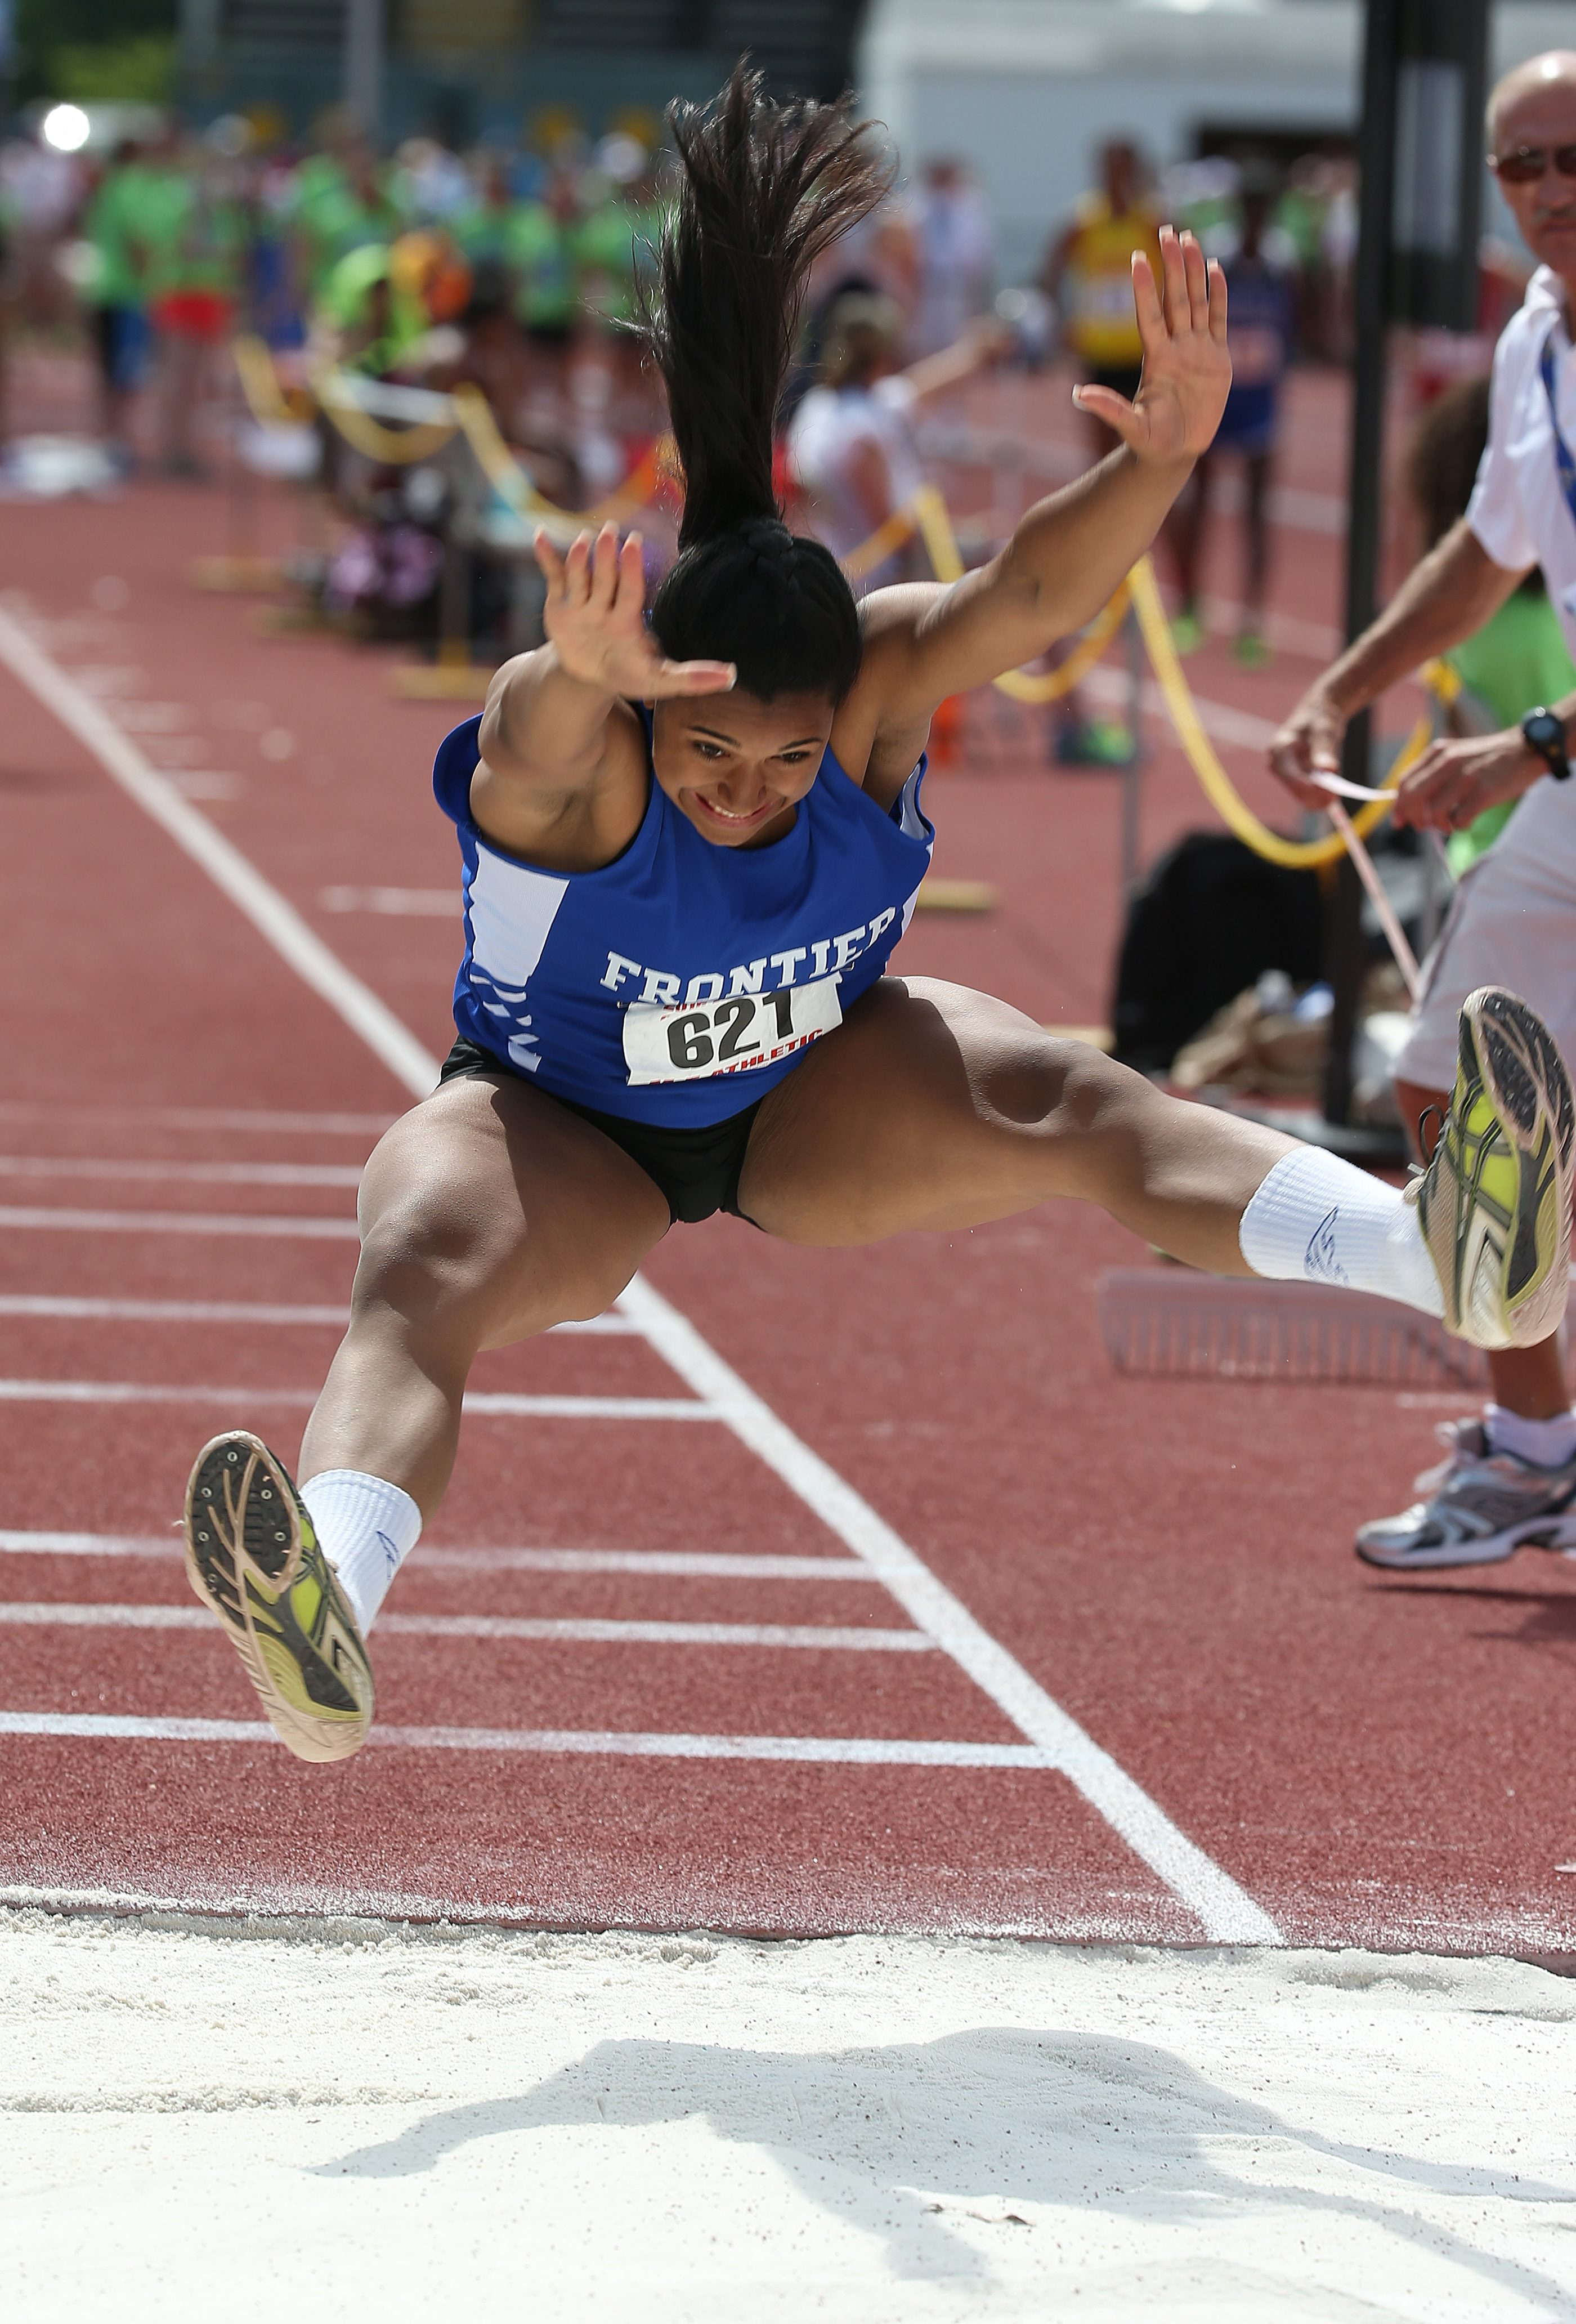 Frontier's McKyla Brooks won the Federation long jump at the New York State Track and Field championships. For a photo gallery from Saturday's action at the state track meet, go to BuffaloNews.com.